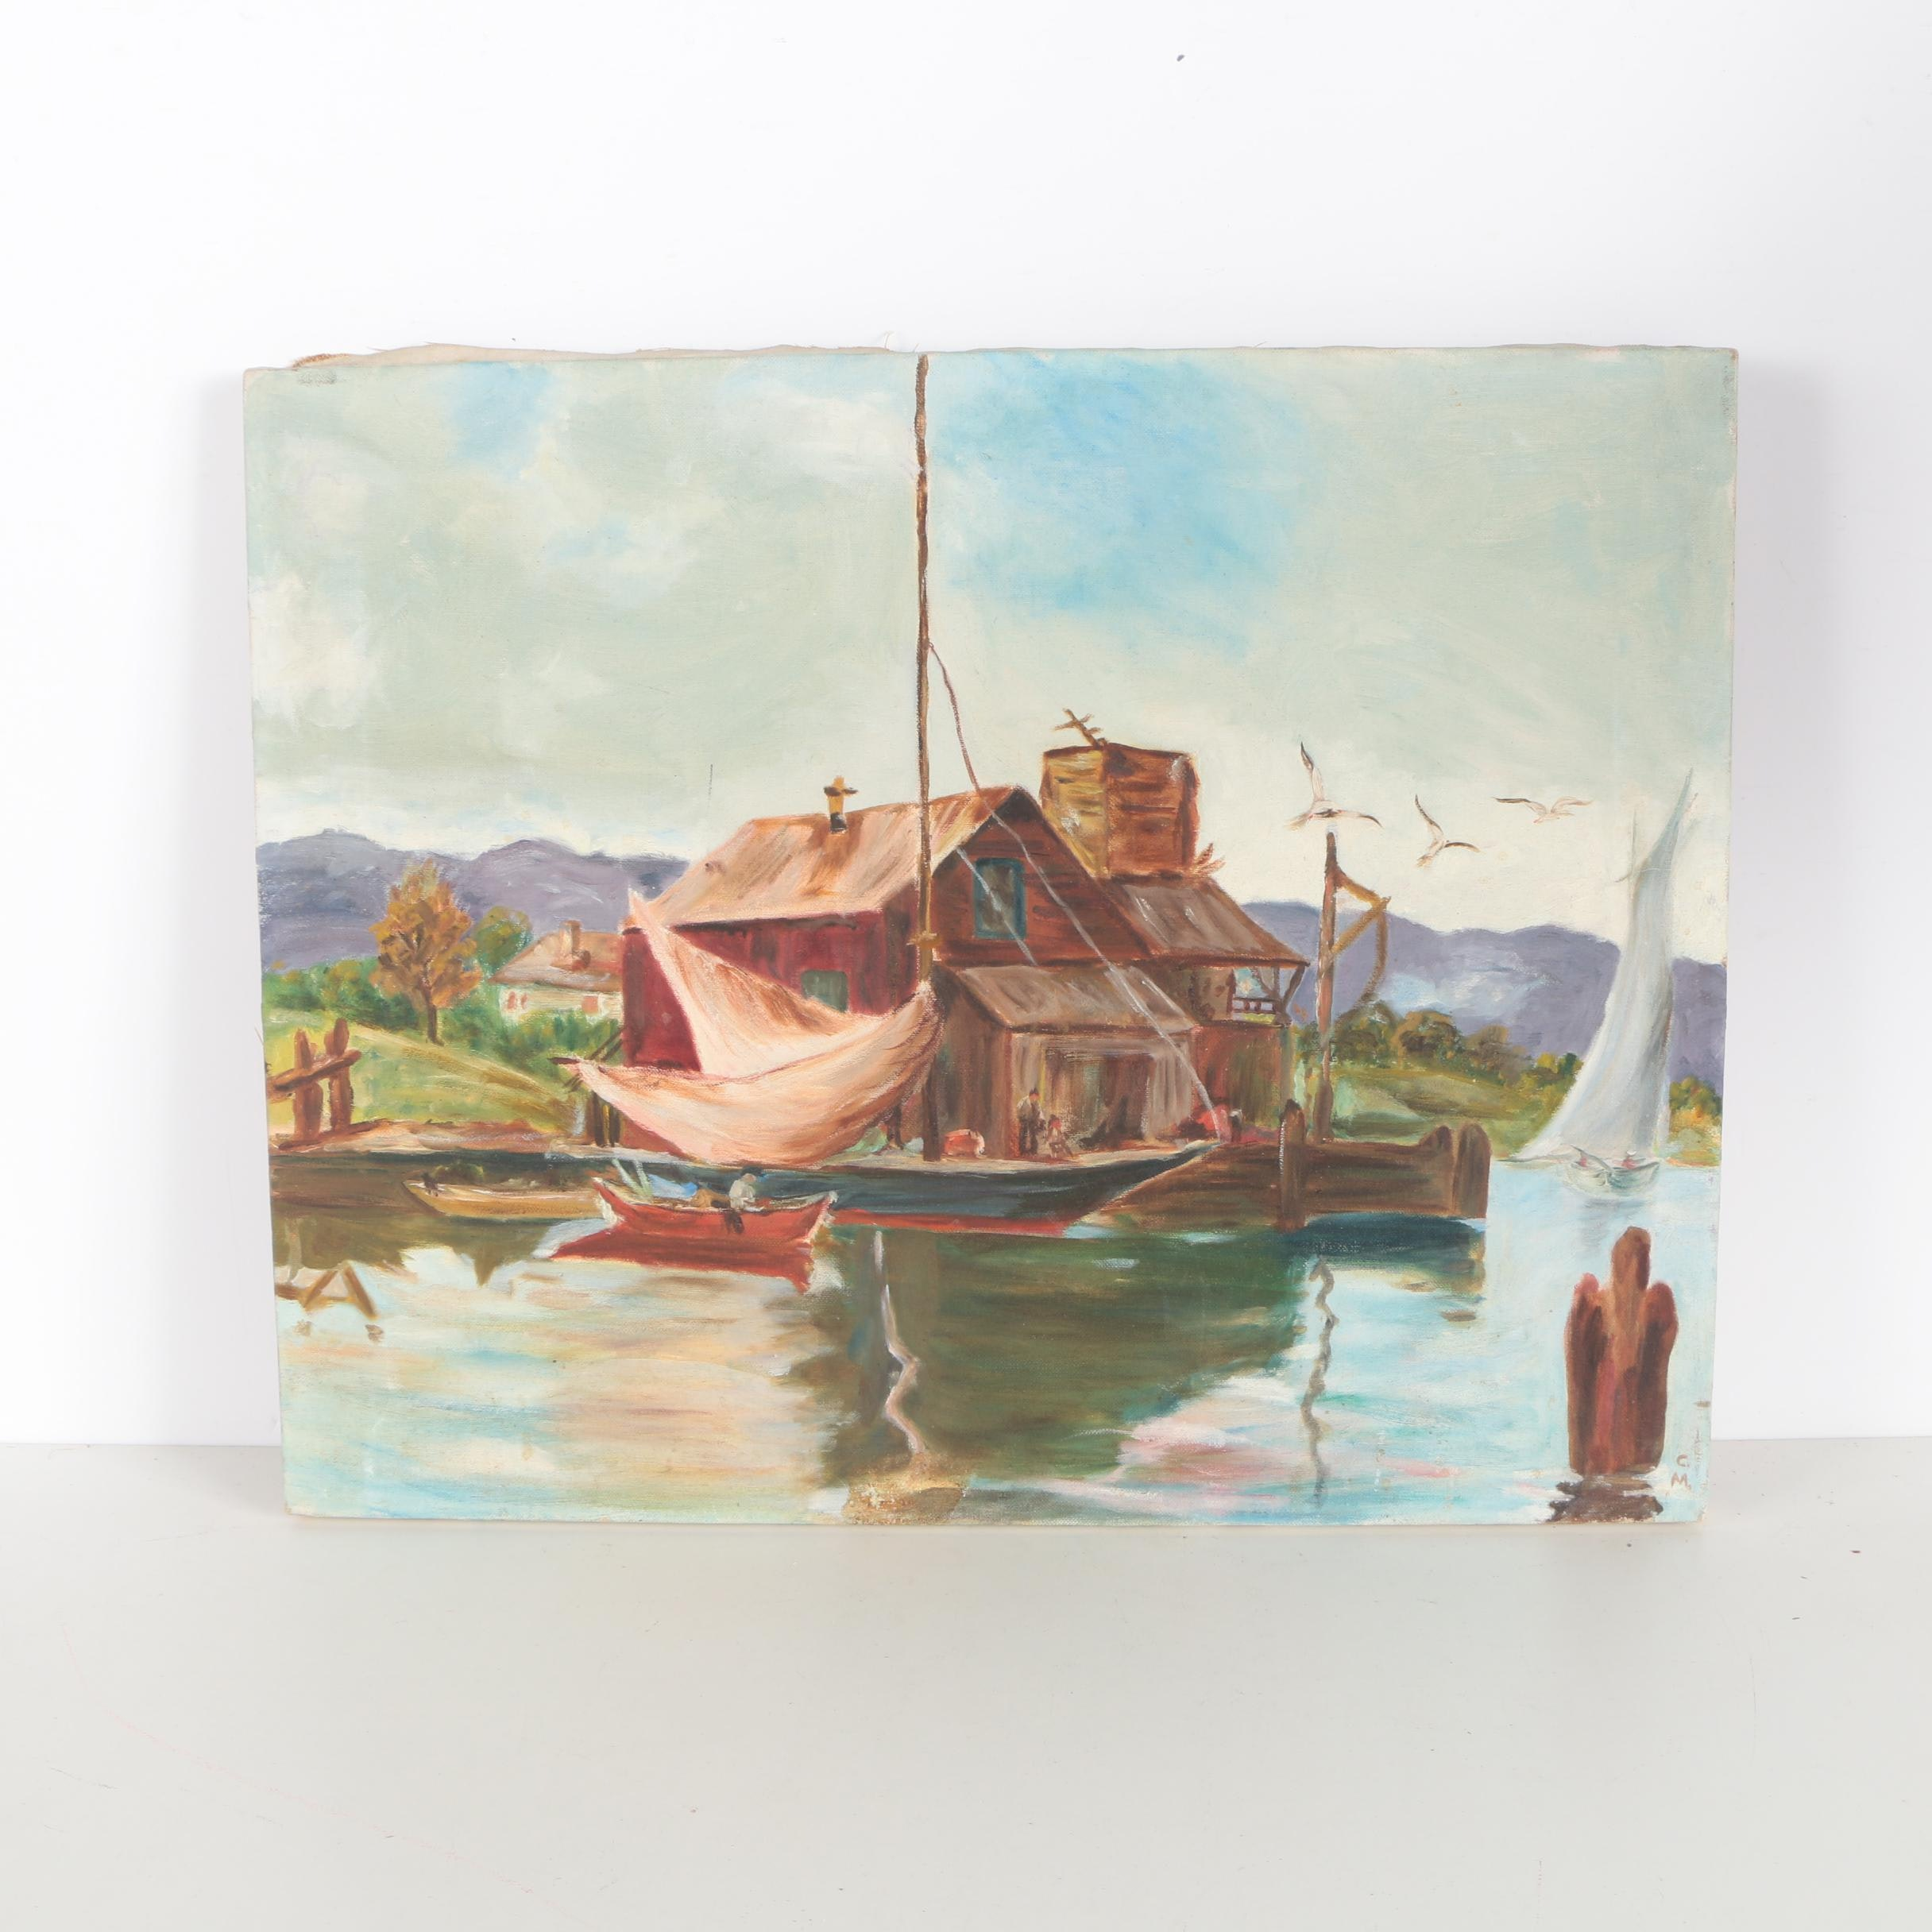 Oil Painting on Canvas of a Sailboat